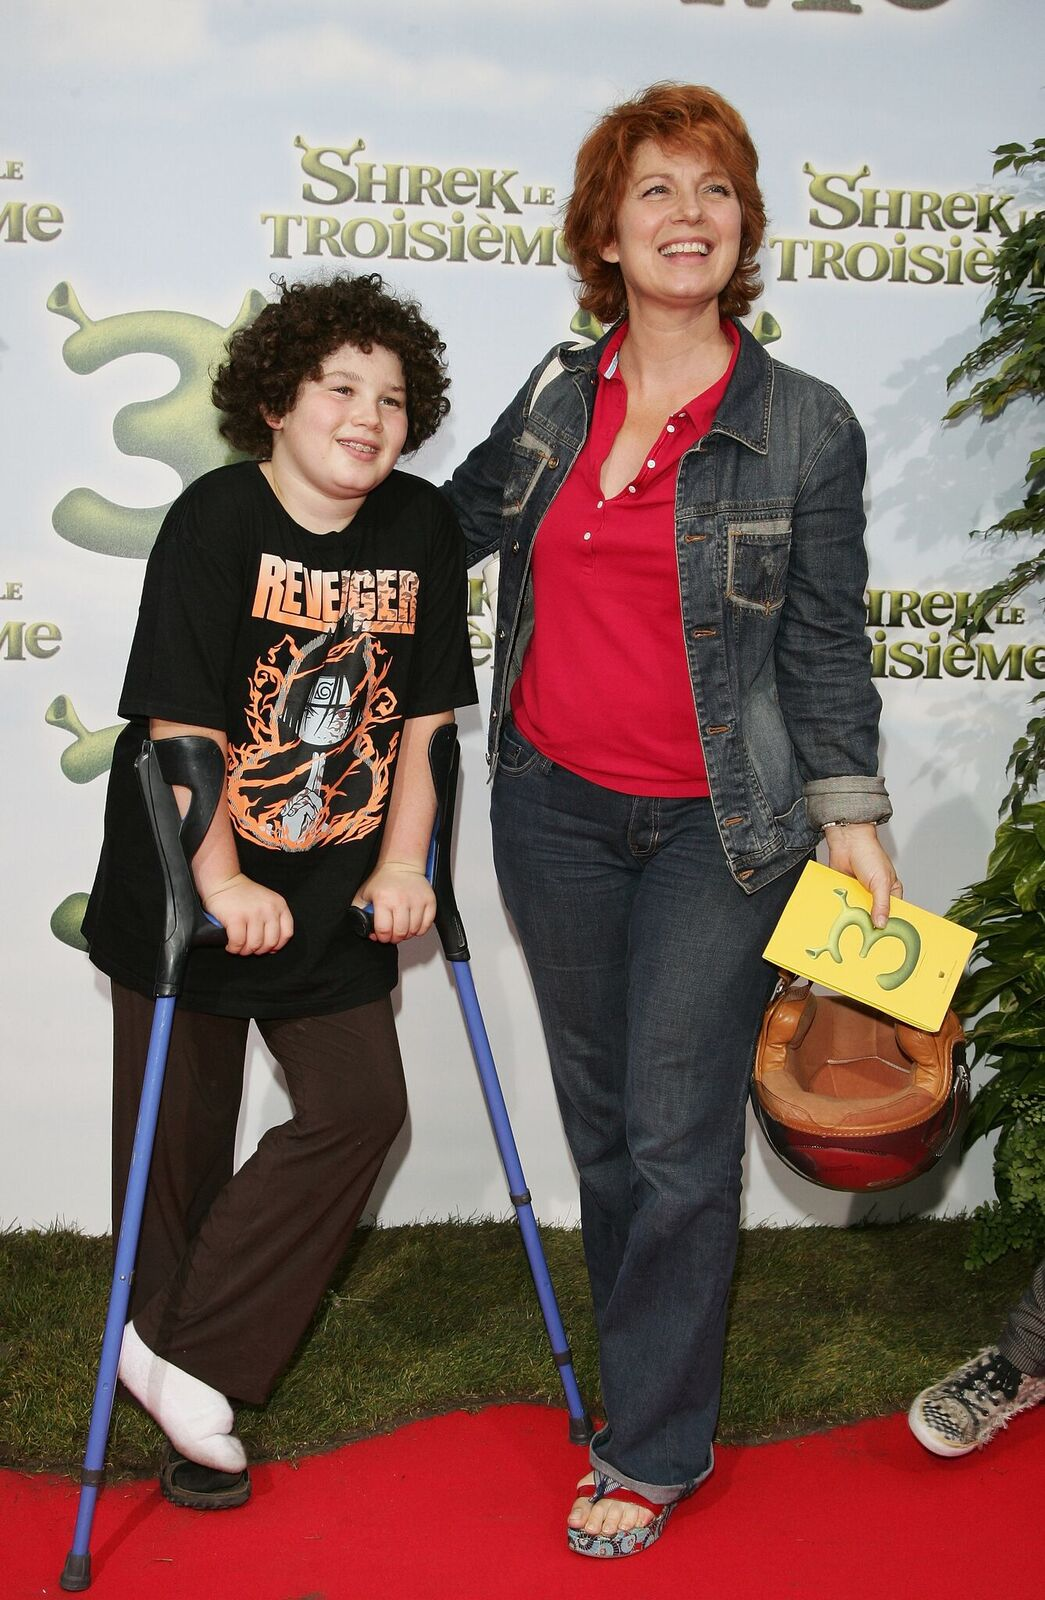 "Véronique Genest pose avec son fils pour assister à la première du film de Chris Miller ""Shrek 3"" à Paris, France. Photo : Getty Images"